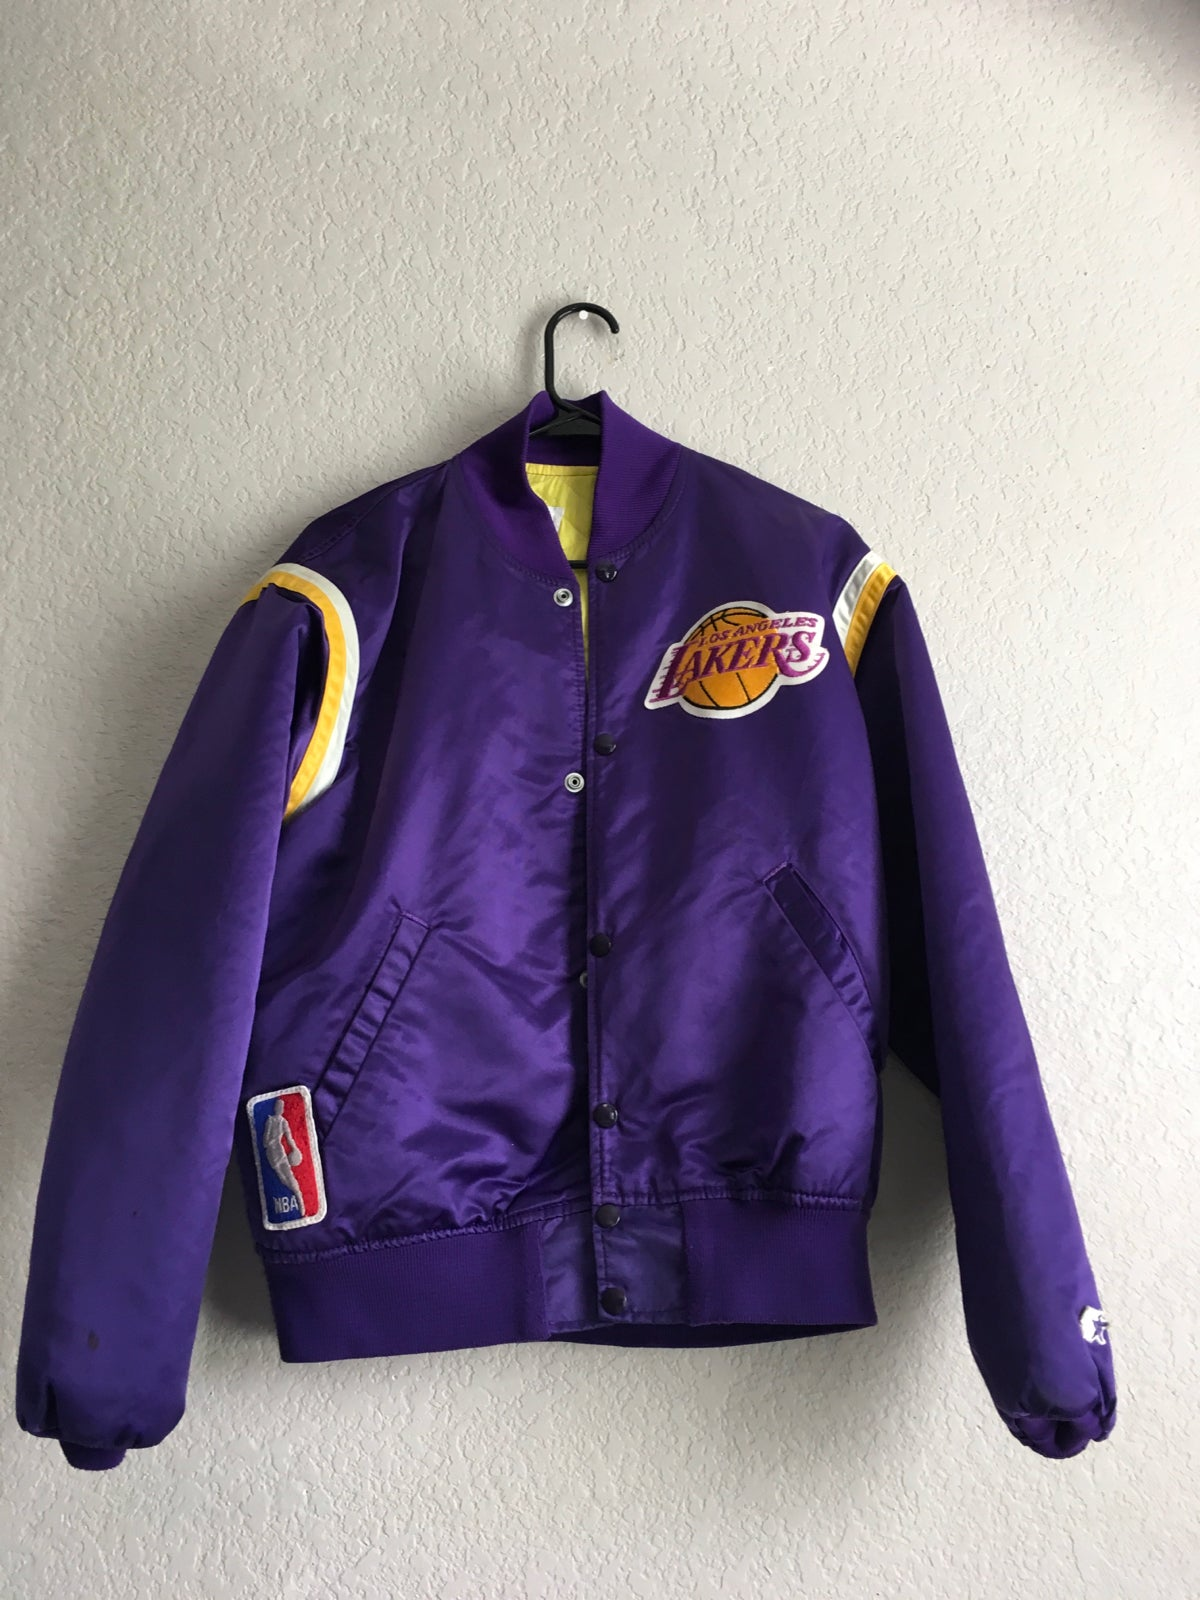 Vintage Lakers Jacket Corde Thrift Store